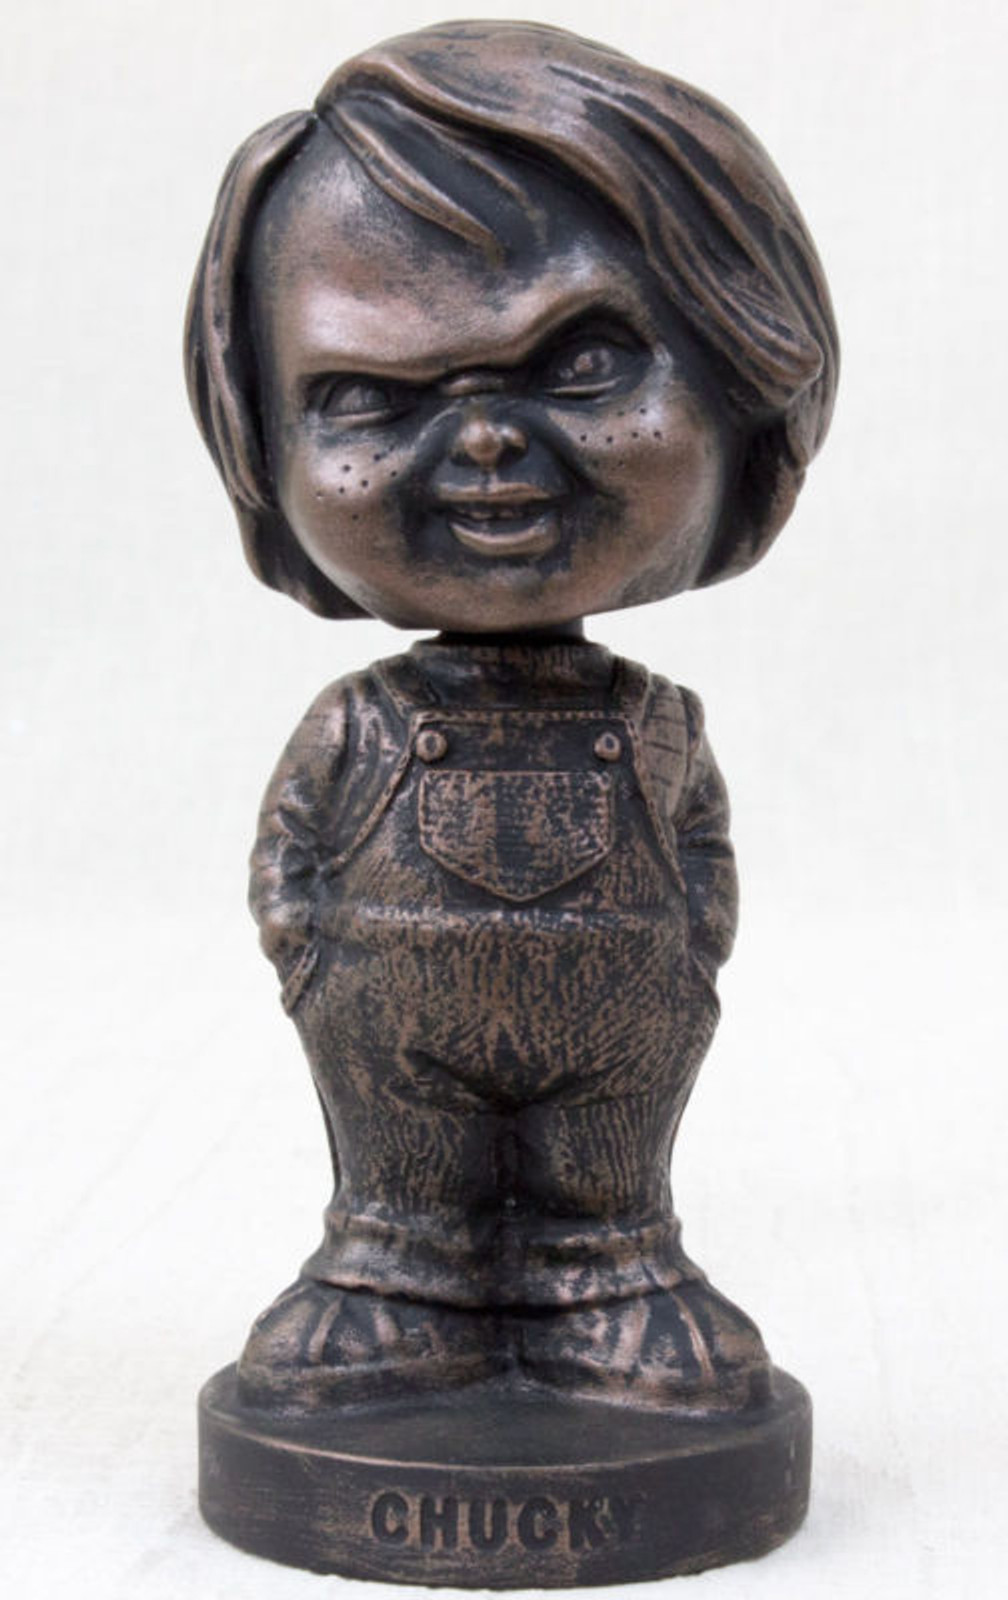 Child's Play 2 Chucky Bronze Statue Type Bobble Head Figure Mike Company (Original Limited 200) JAPAN